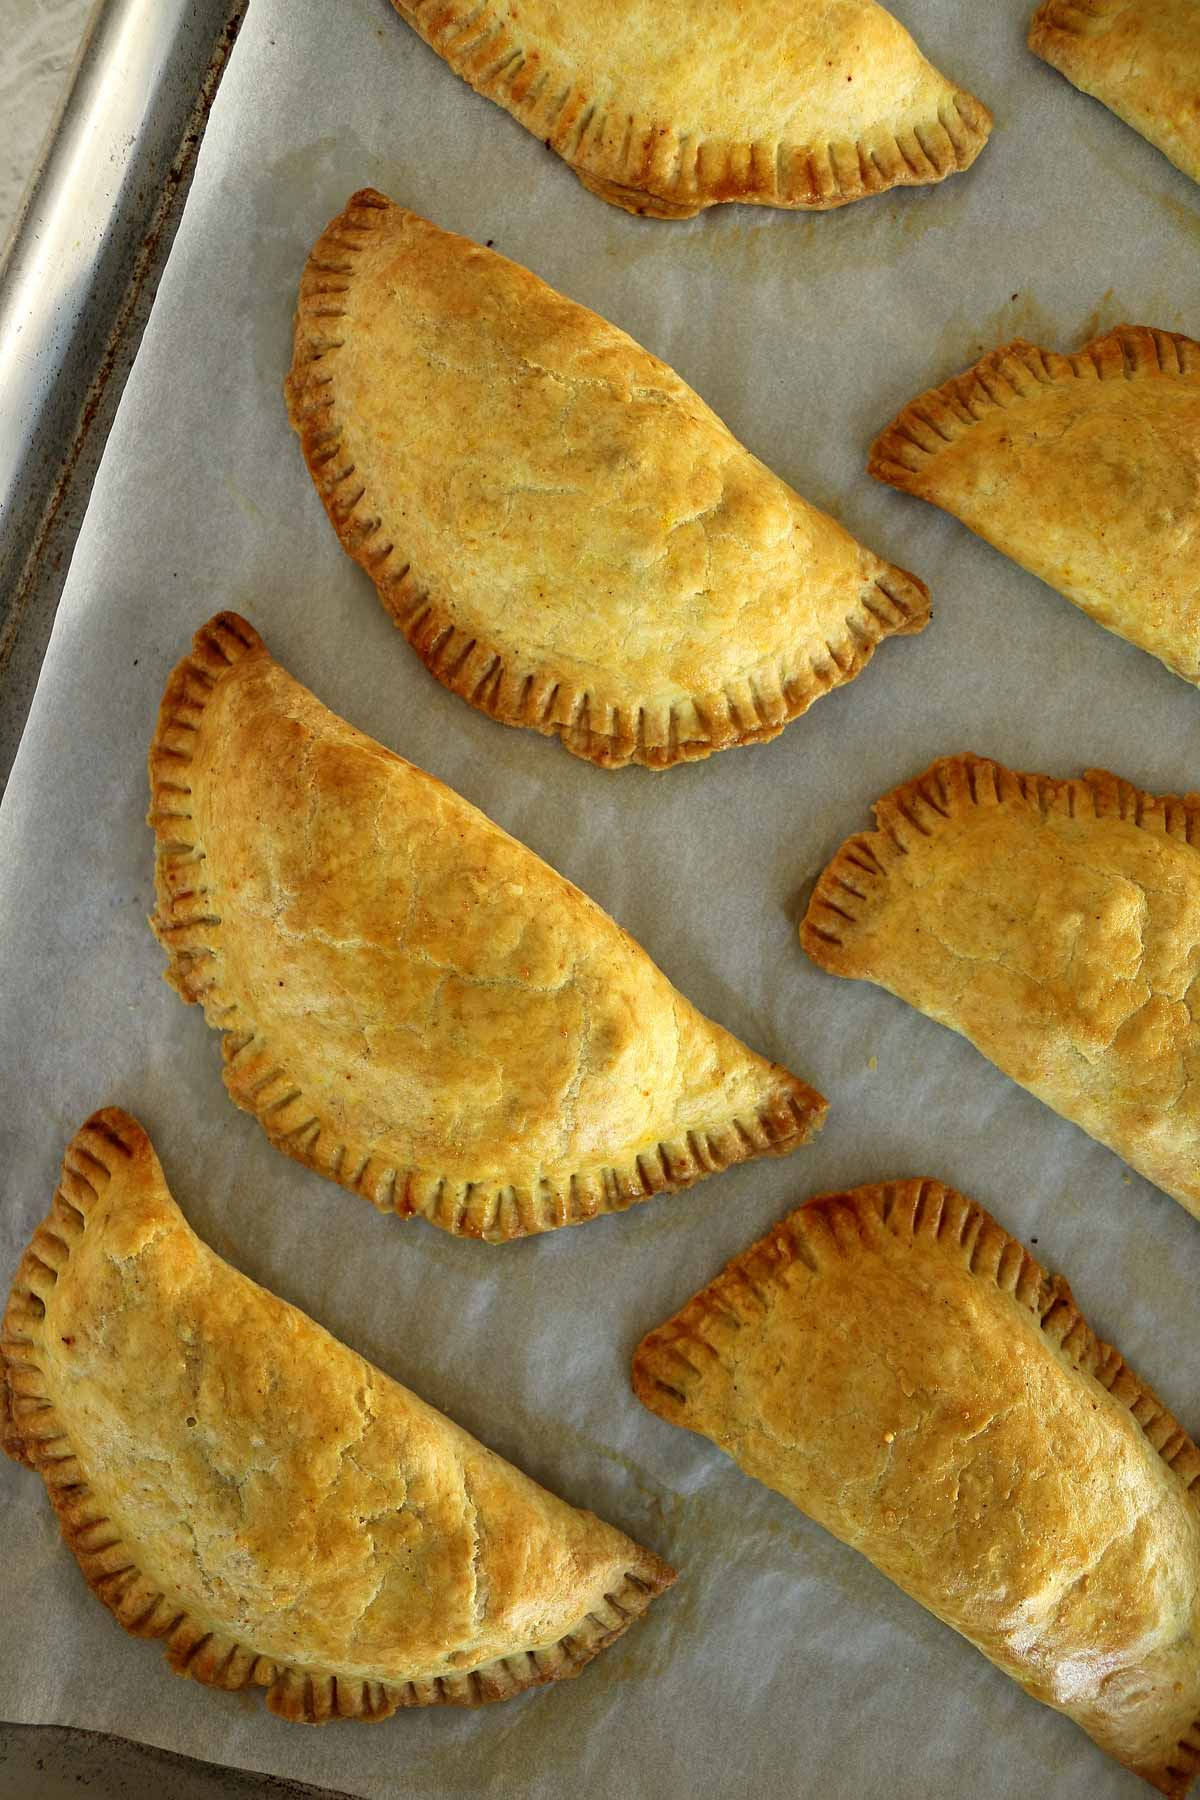 A baking sheet of Jamaican beef patties with golden crusts, and crimped edges.